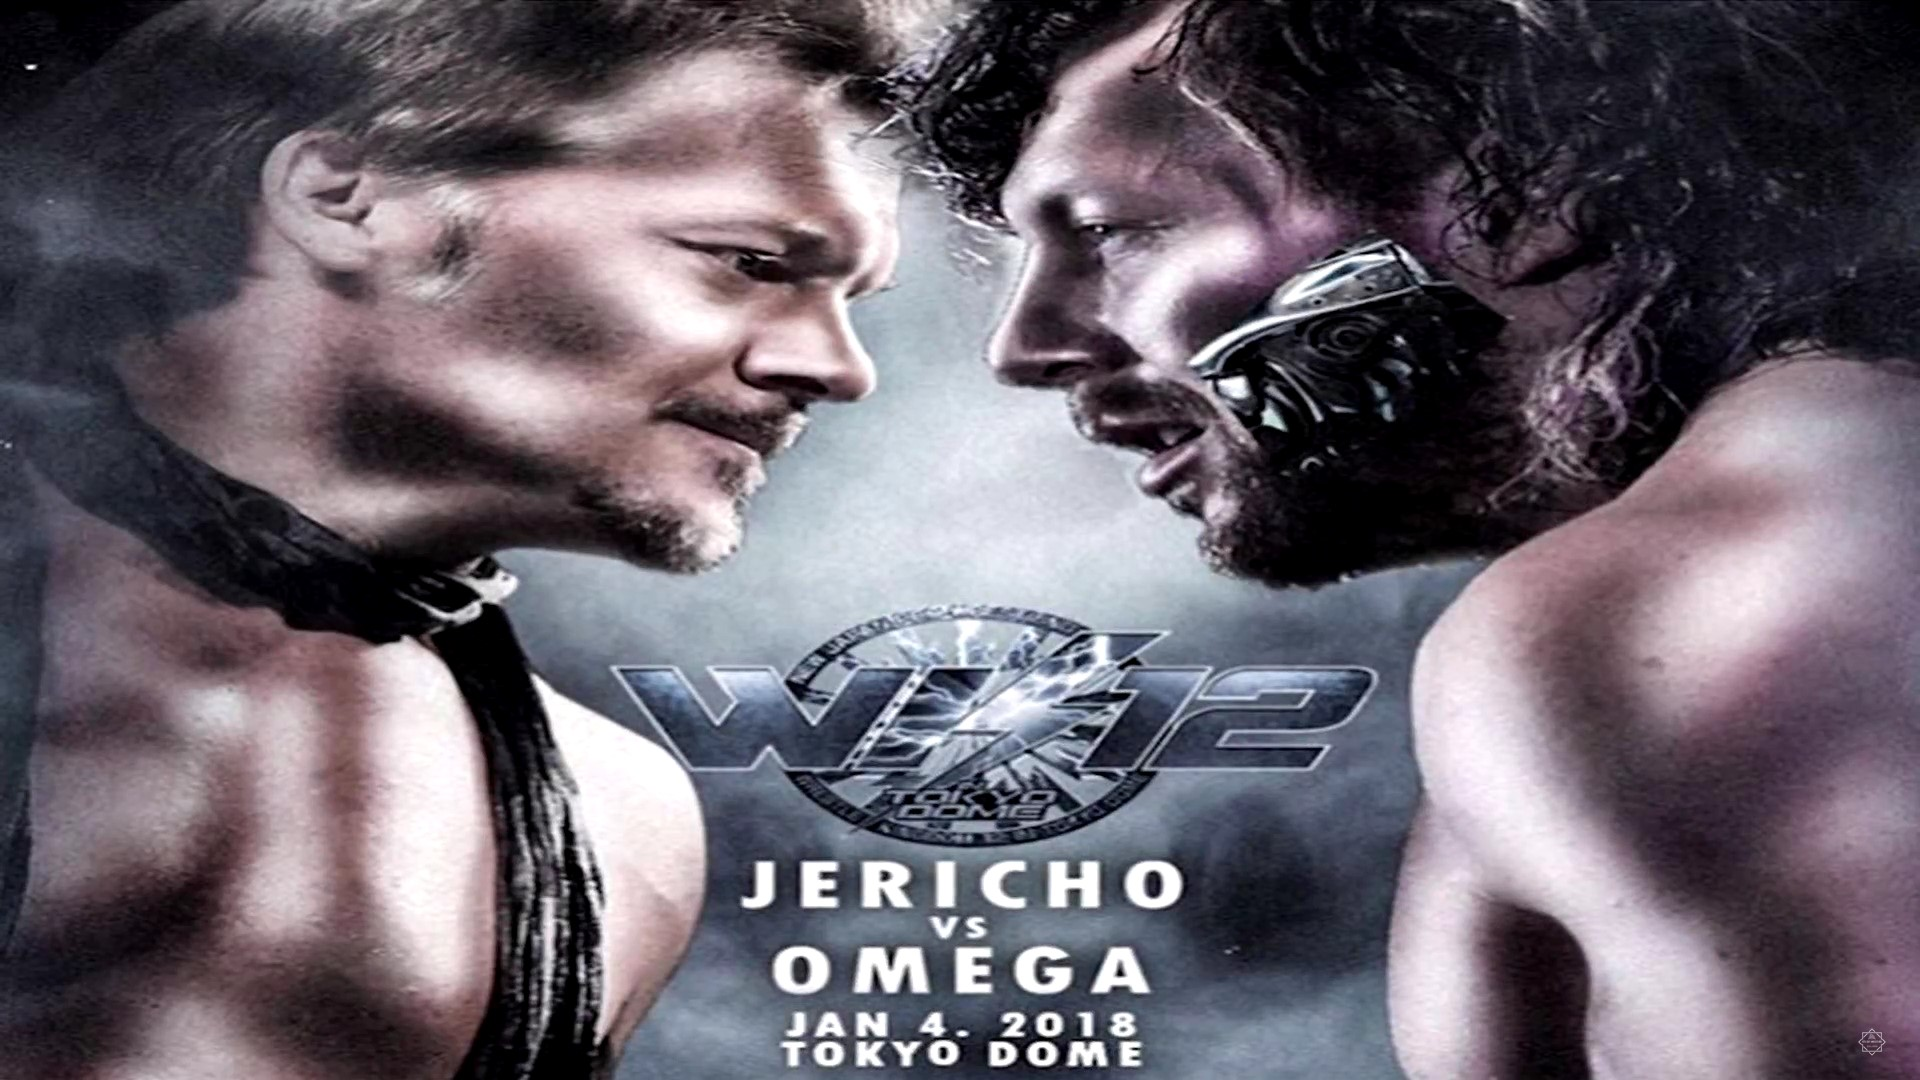 New Japan Pro Wrestling NJPW Wrestle Kingdom 12 kenny omega vs chris jericho alpha vs omega